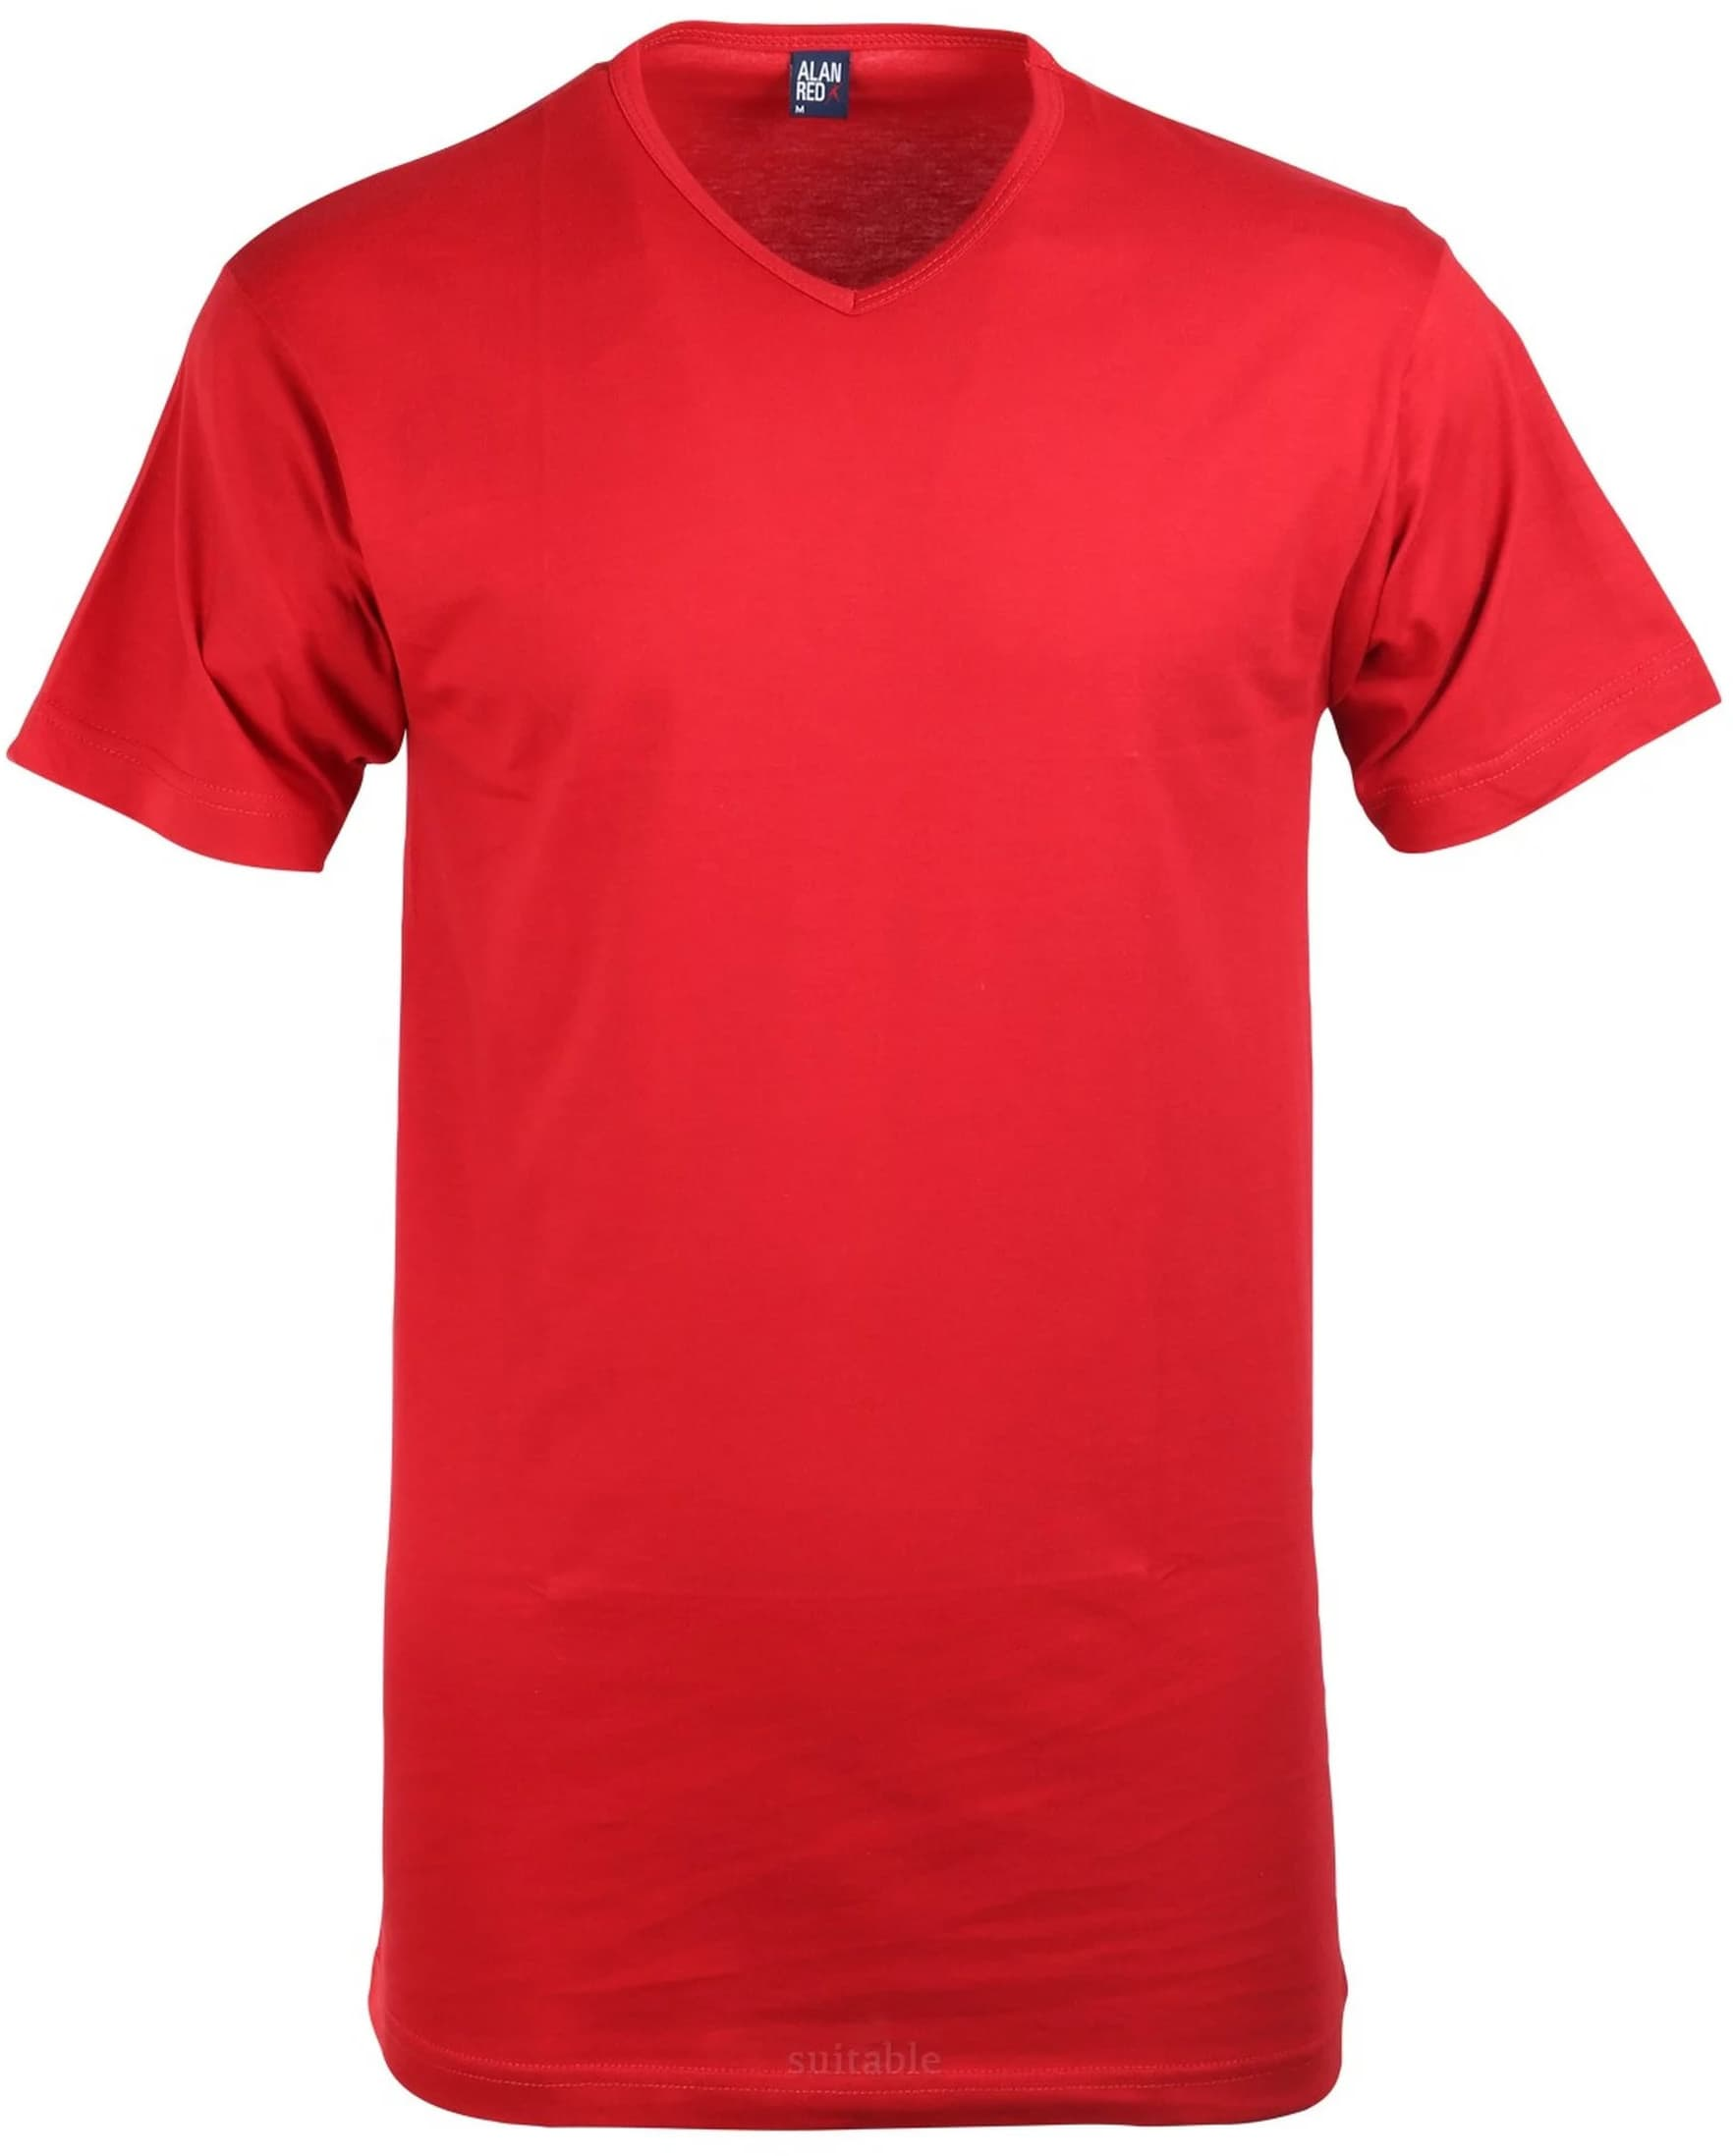 Alan Red Vermont T-shirt V-Neck Red 1-Pack foto 0